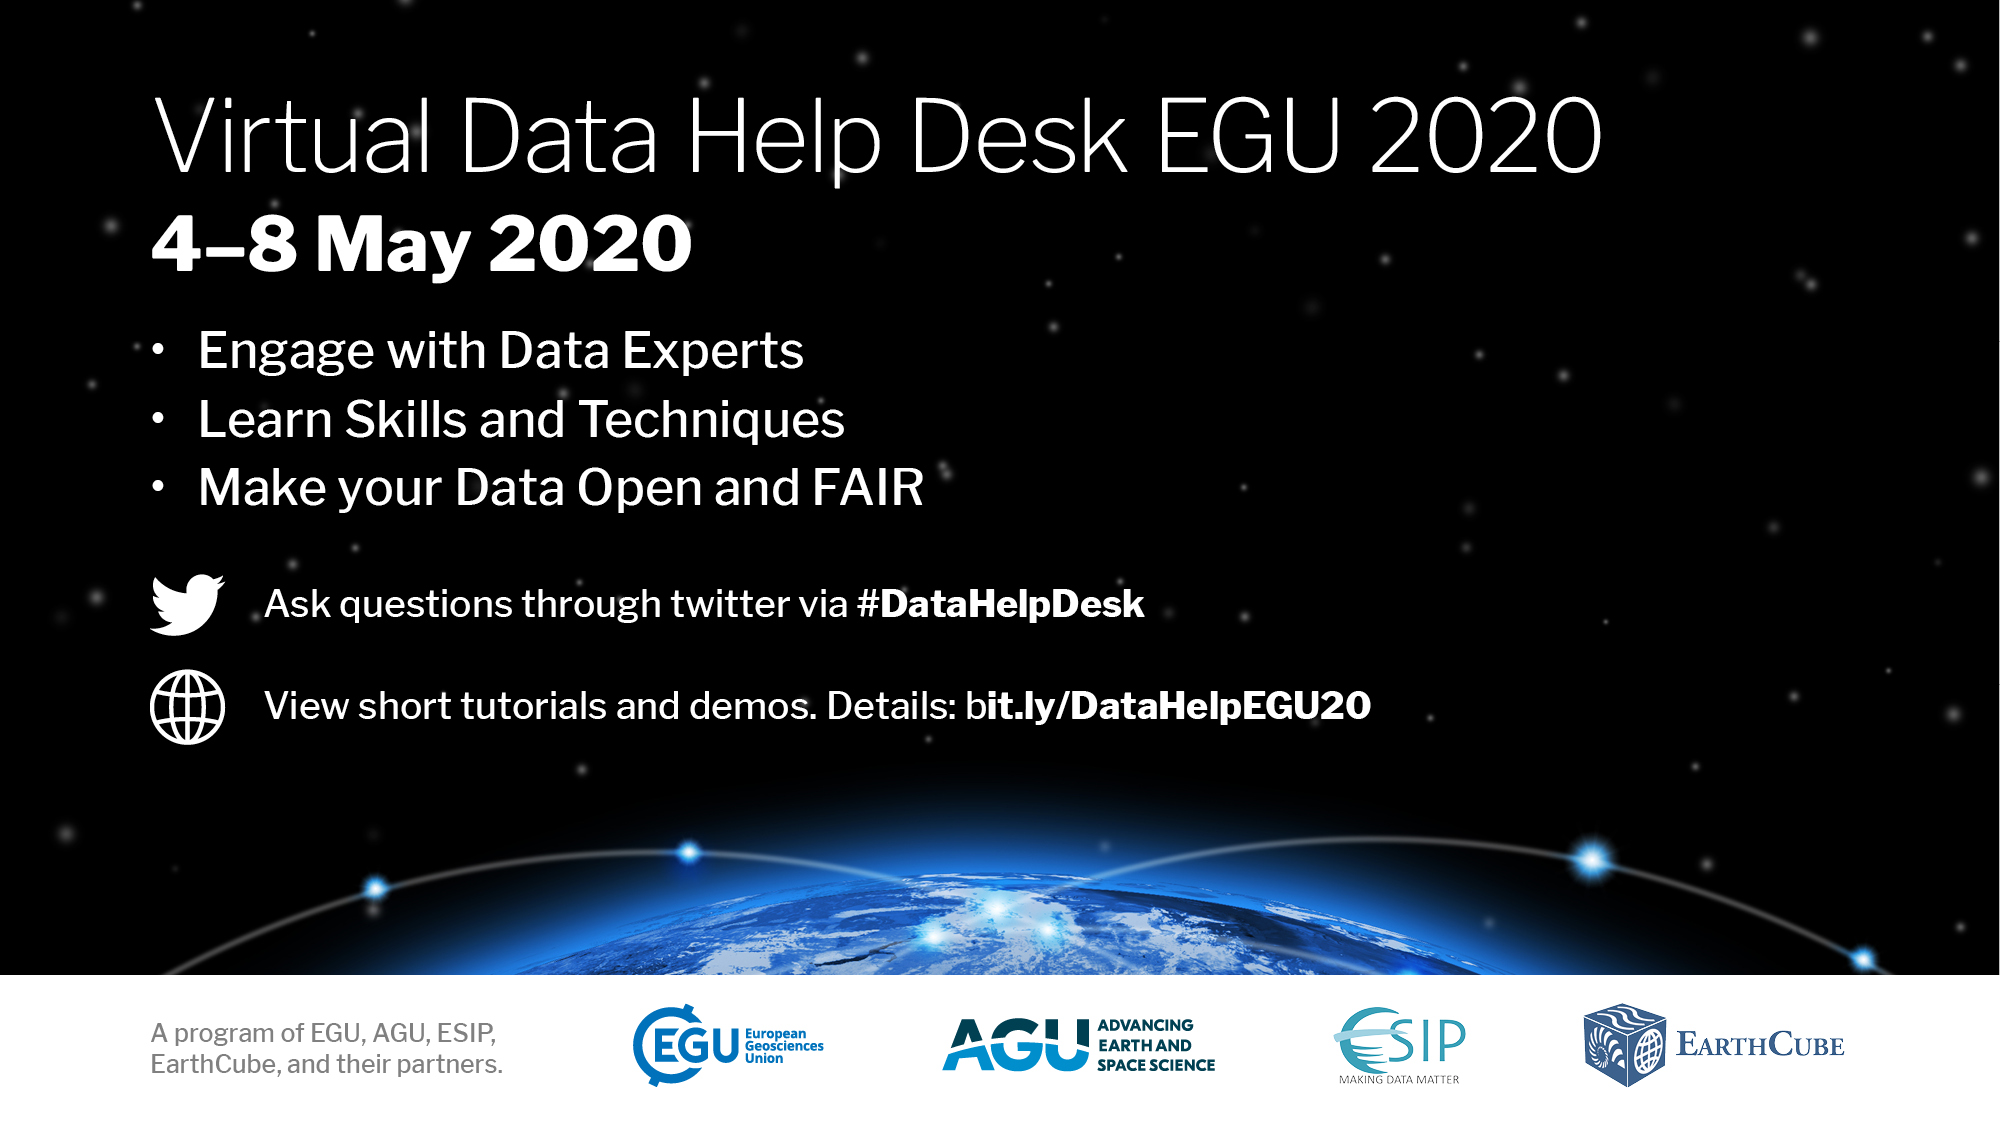 postcard with information for the virtual data help desk at EGU 2020: Sharing Geosciences Online